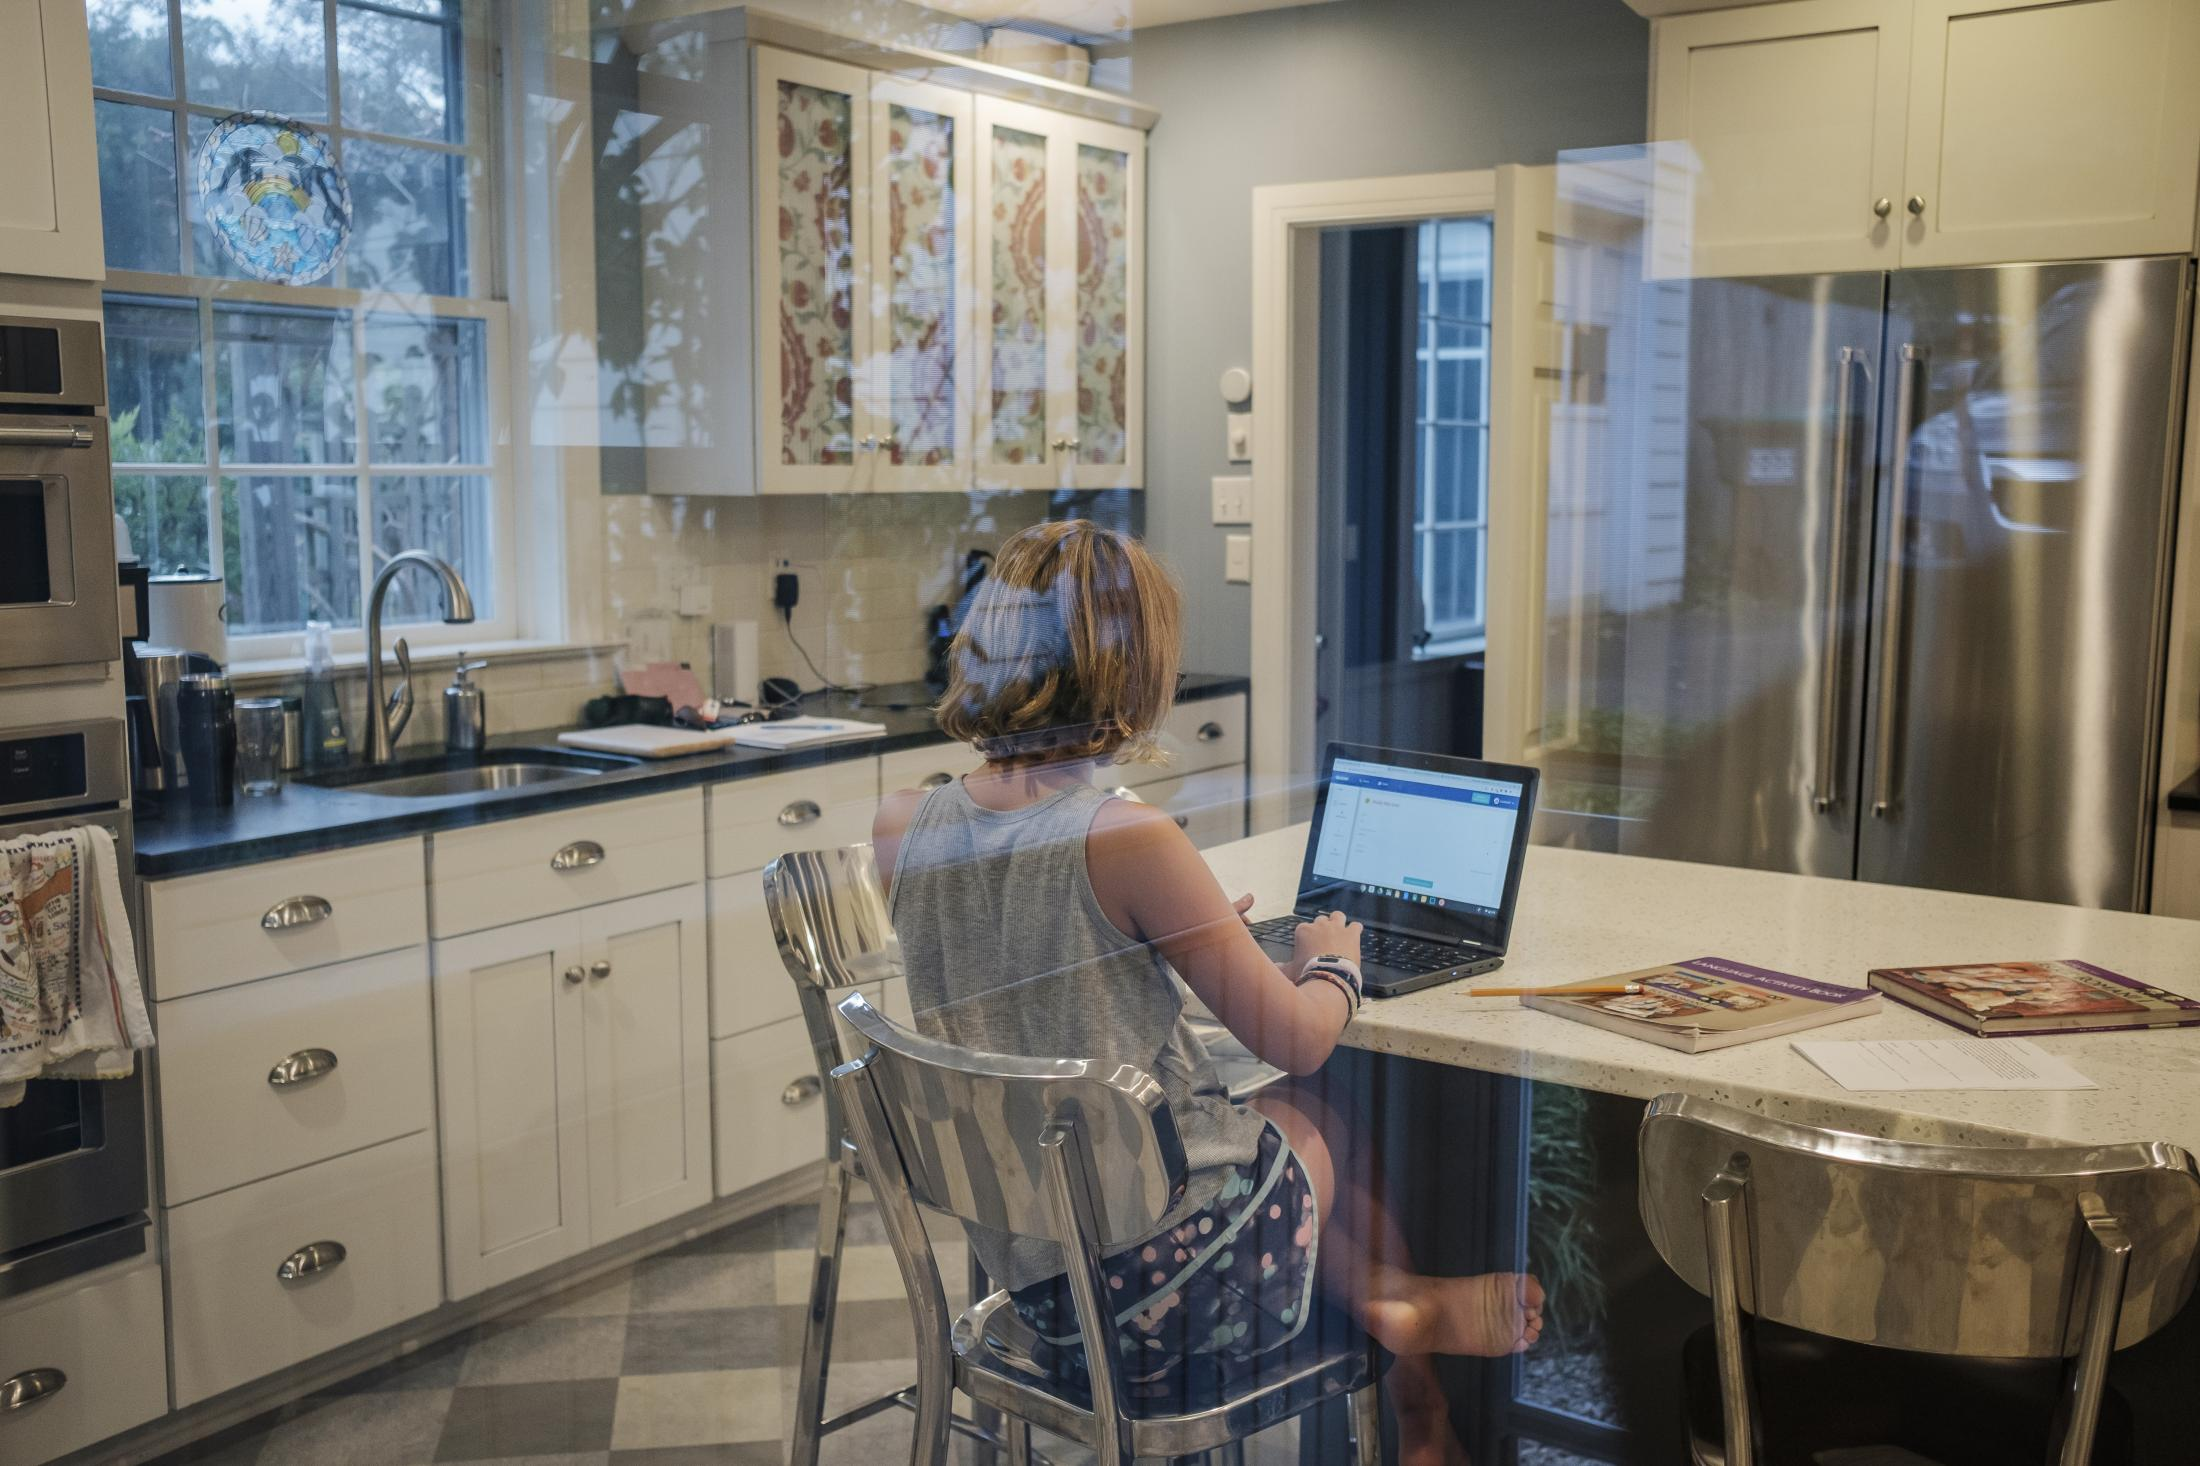 Hannah Seidman working on her science homework at her house in Charlottesville, Virginia, U.S., on Monday Sept. 23, 2019. Hannah is a patient in a genetic risk study about type 1 diabetes at University of Virginia. Photographer: Carlos Bernate/ NPR